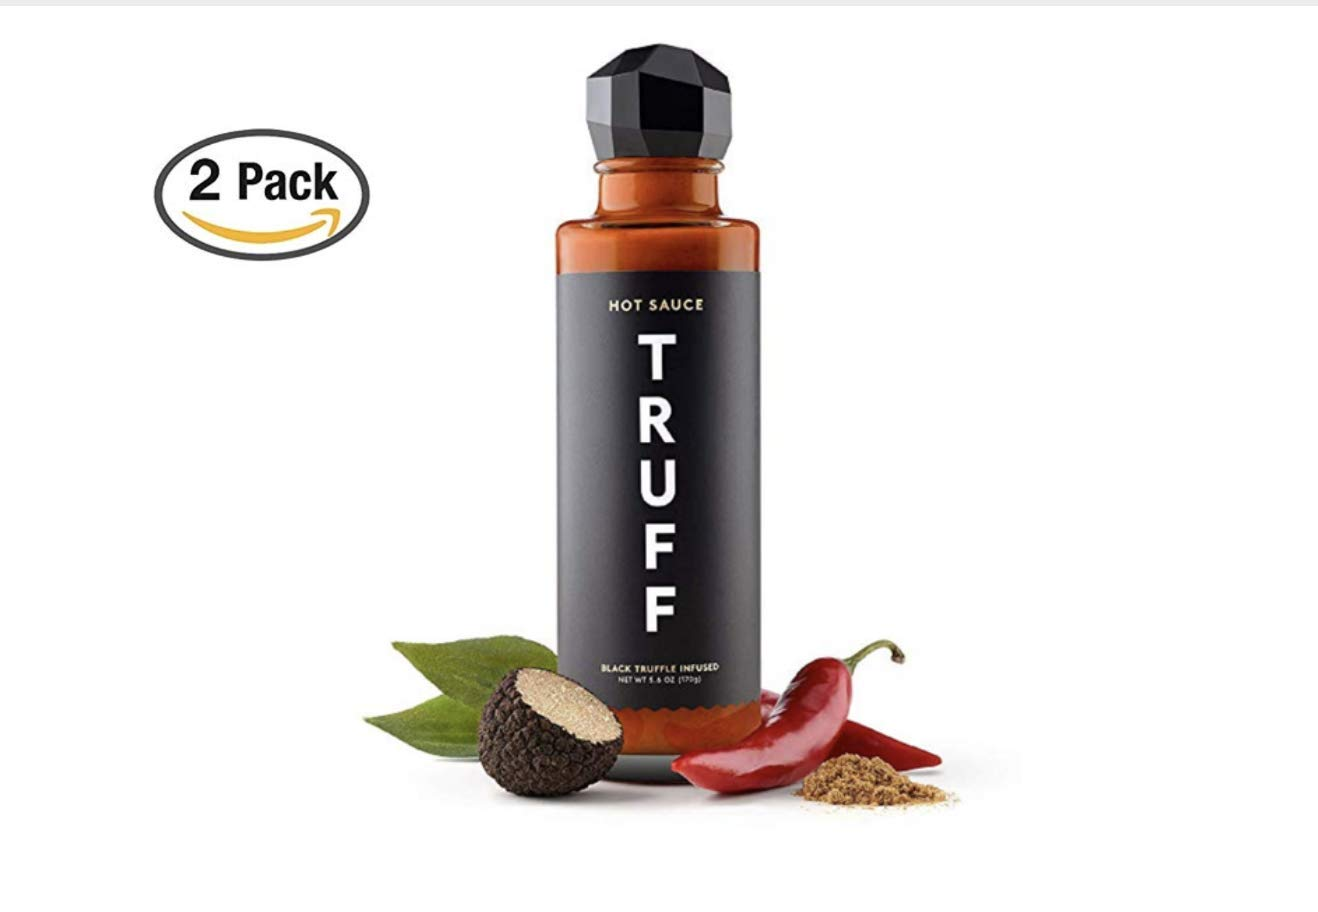 TRUFF Hot Sauce, Gourmet Hot Sauce with Ripe Chili Peppers, Black Truffle, Organic Agave Nectar, An ultra unique Flavor Experience in a 6 oz Bottle (2 Pack)